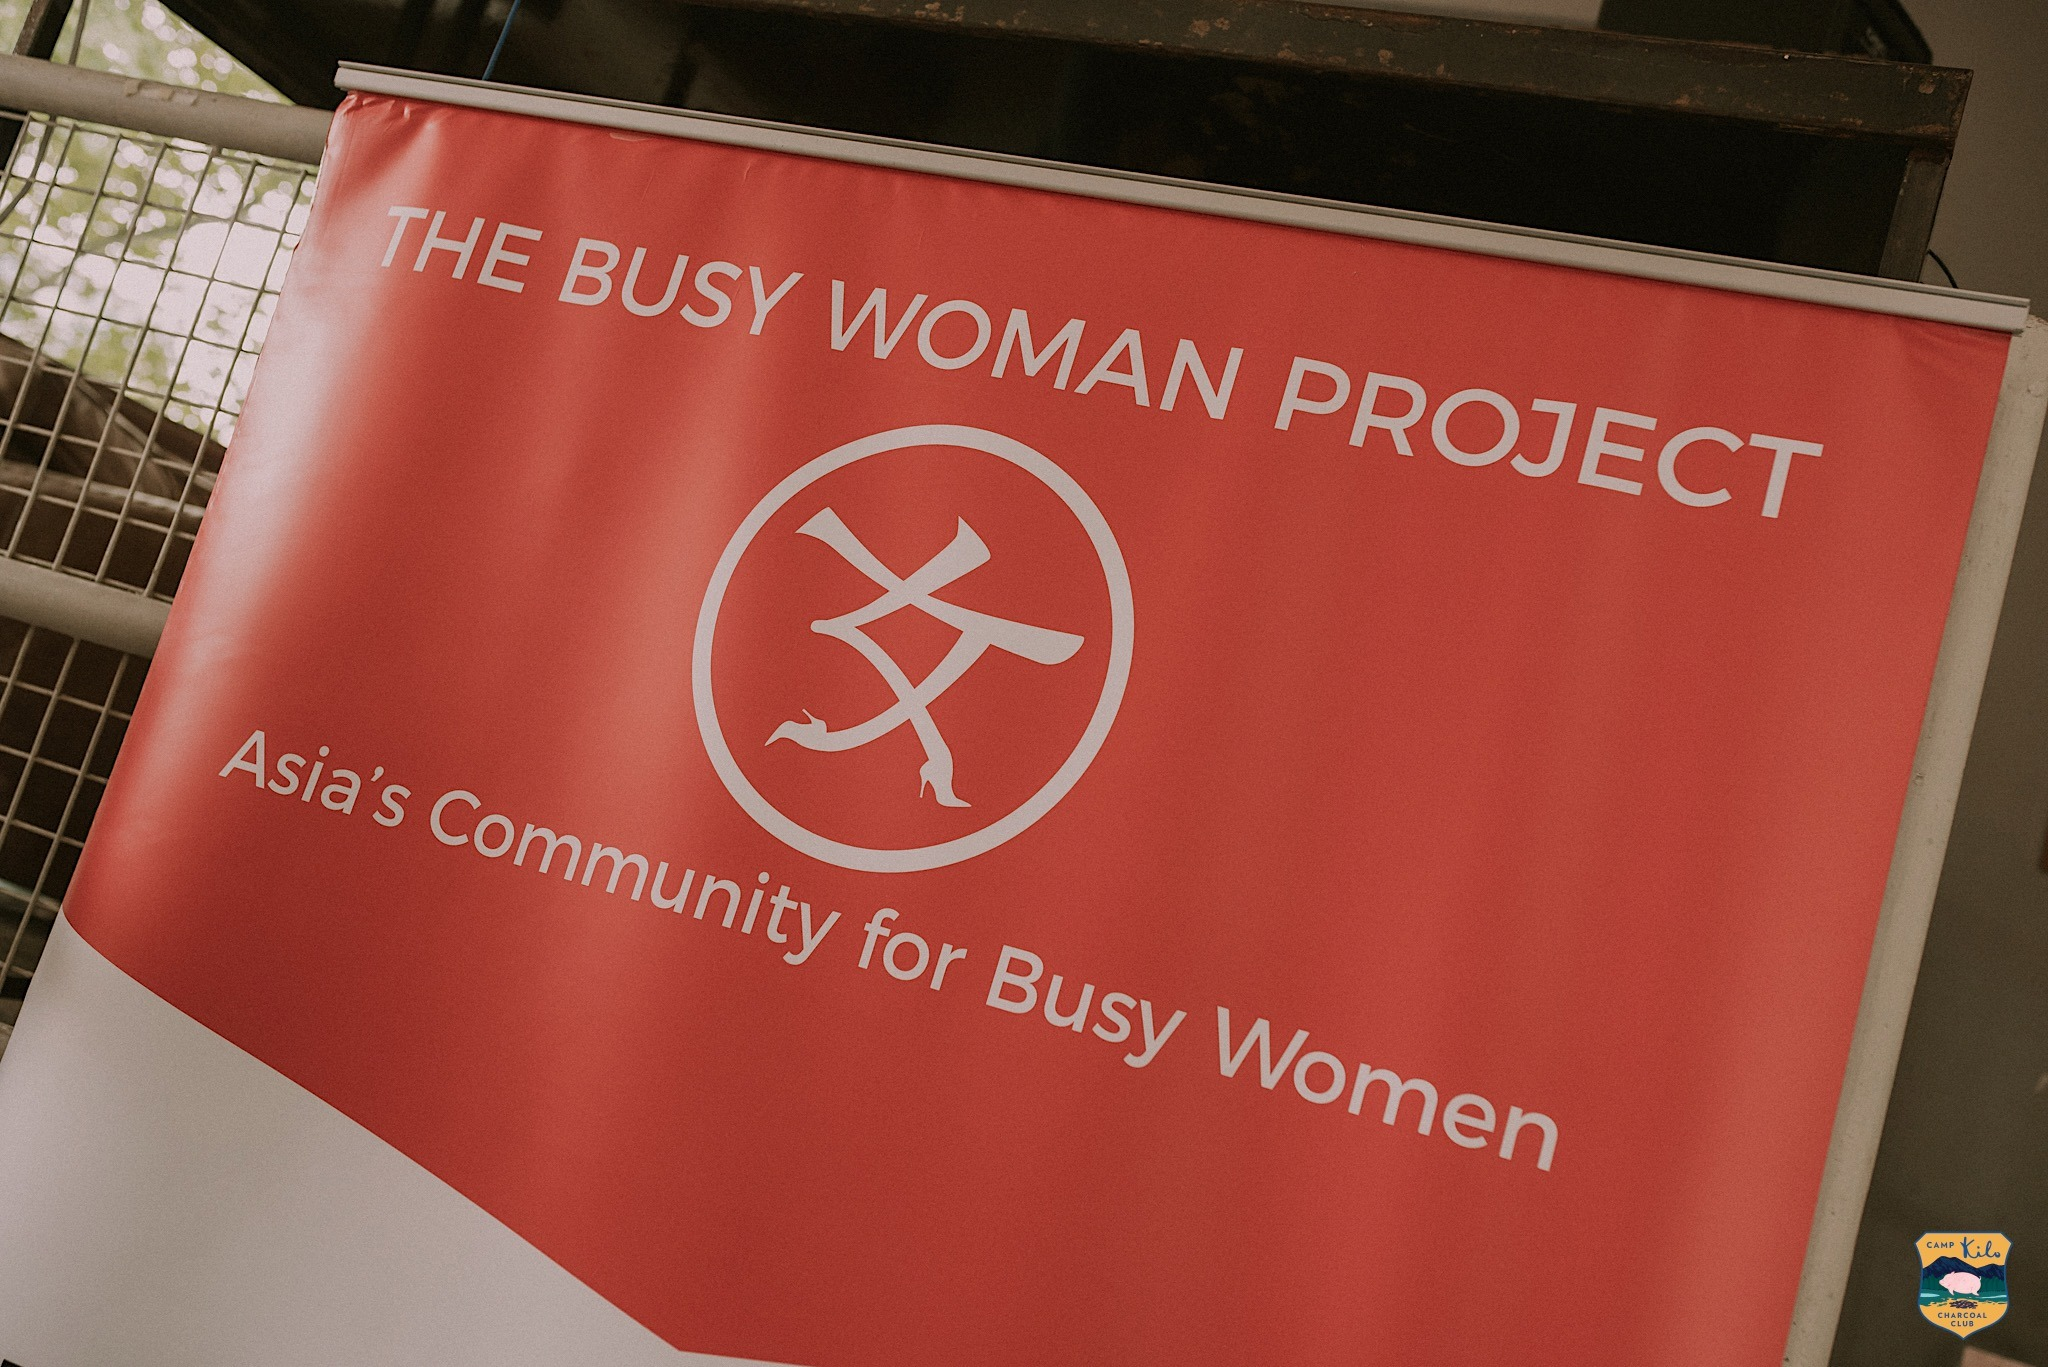 The Busy Woman Project